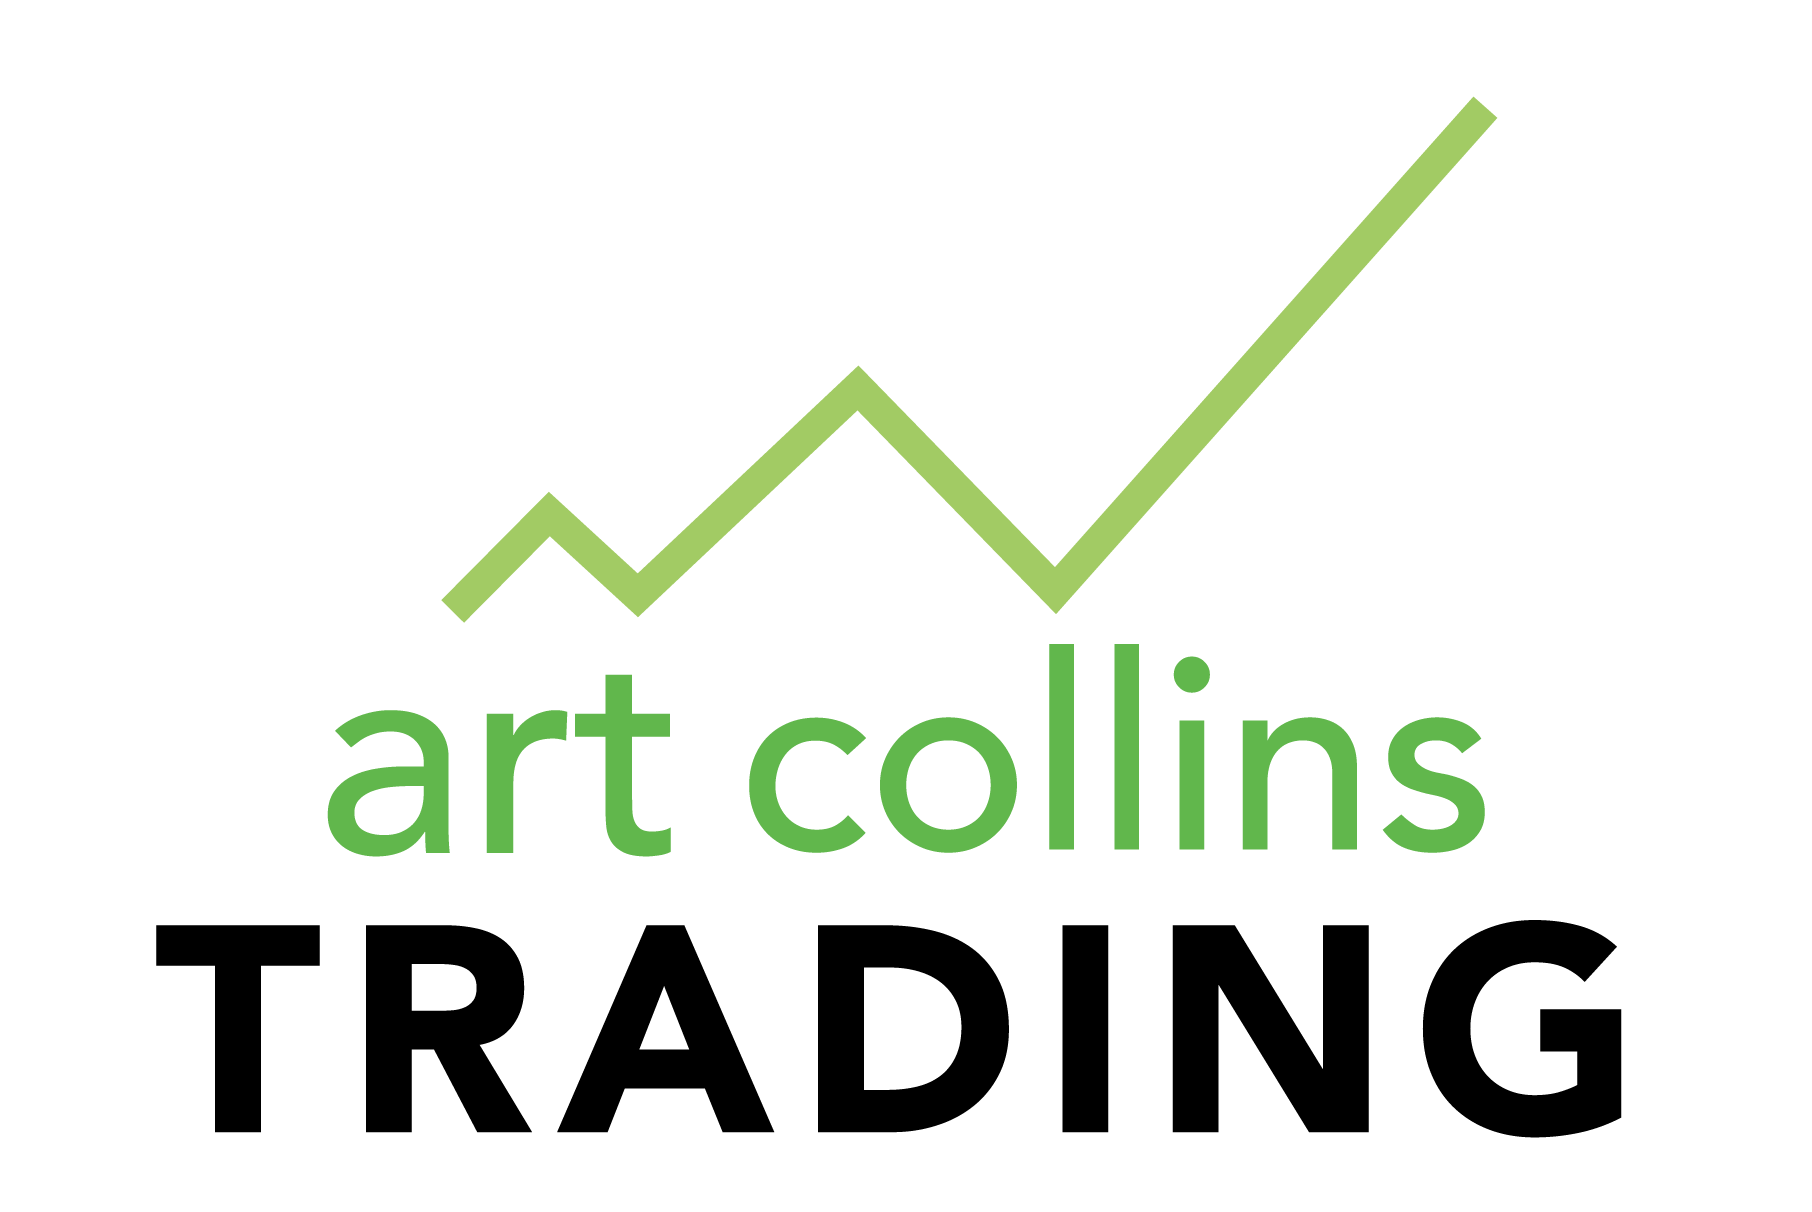 Art Collins Trading